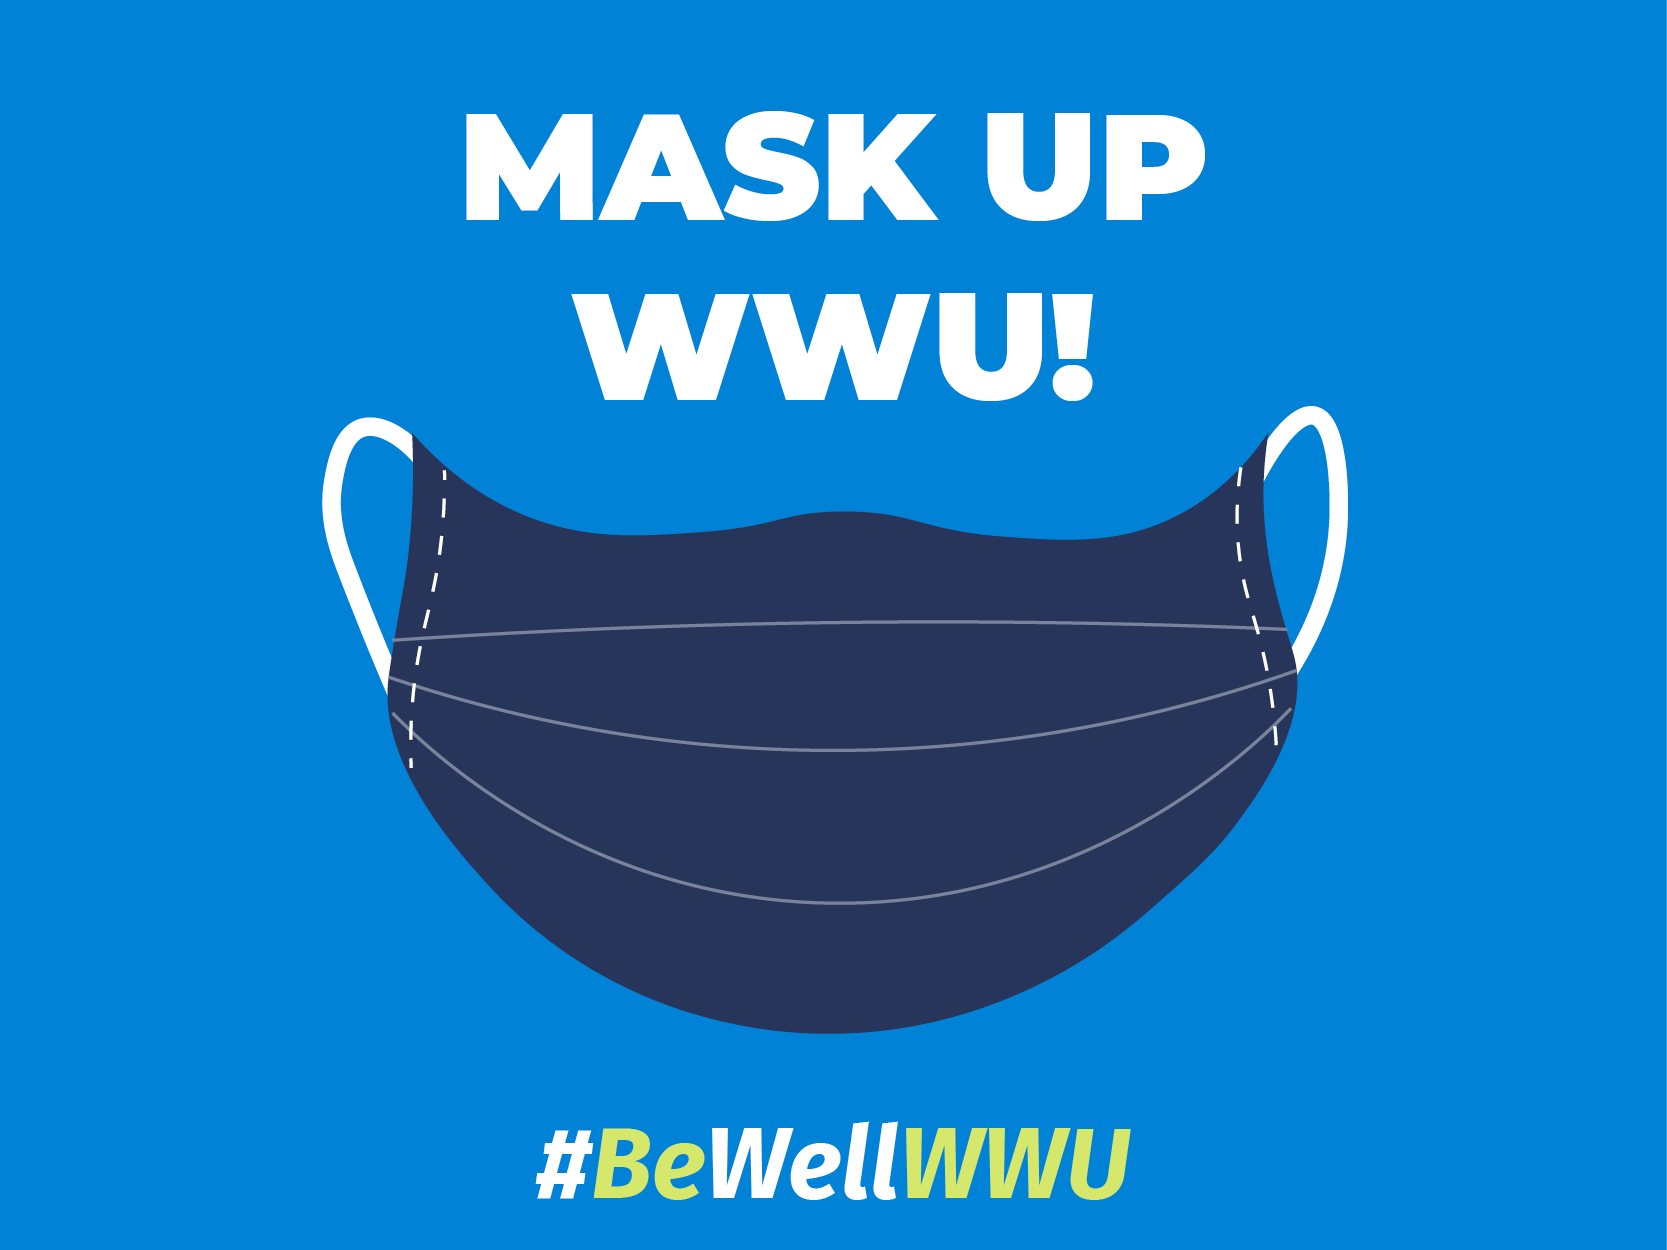 illustration of a face mask with the words Mask Up WWU and #BeWellWWU